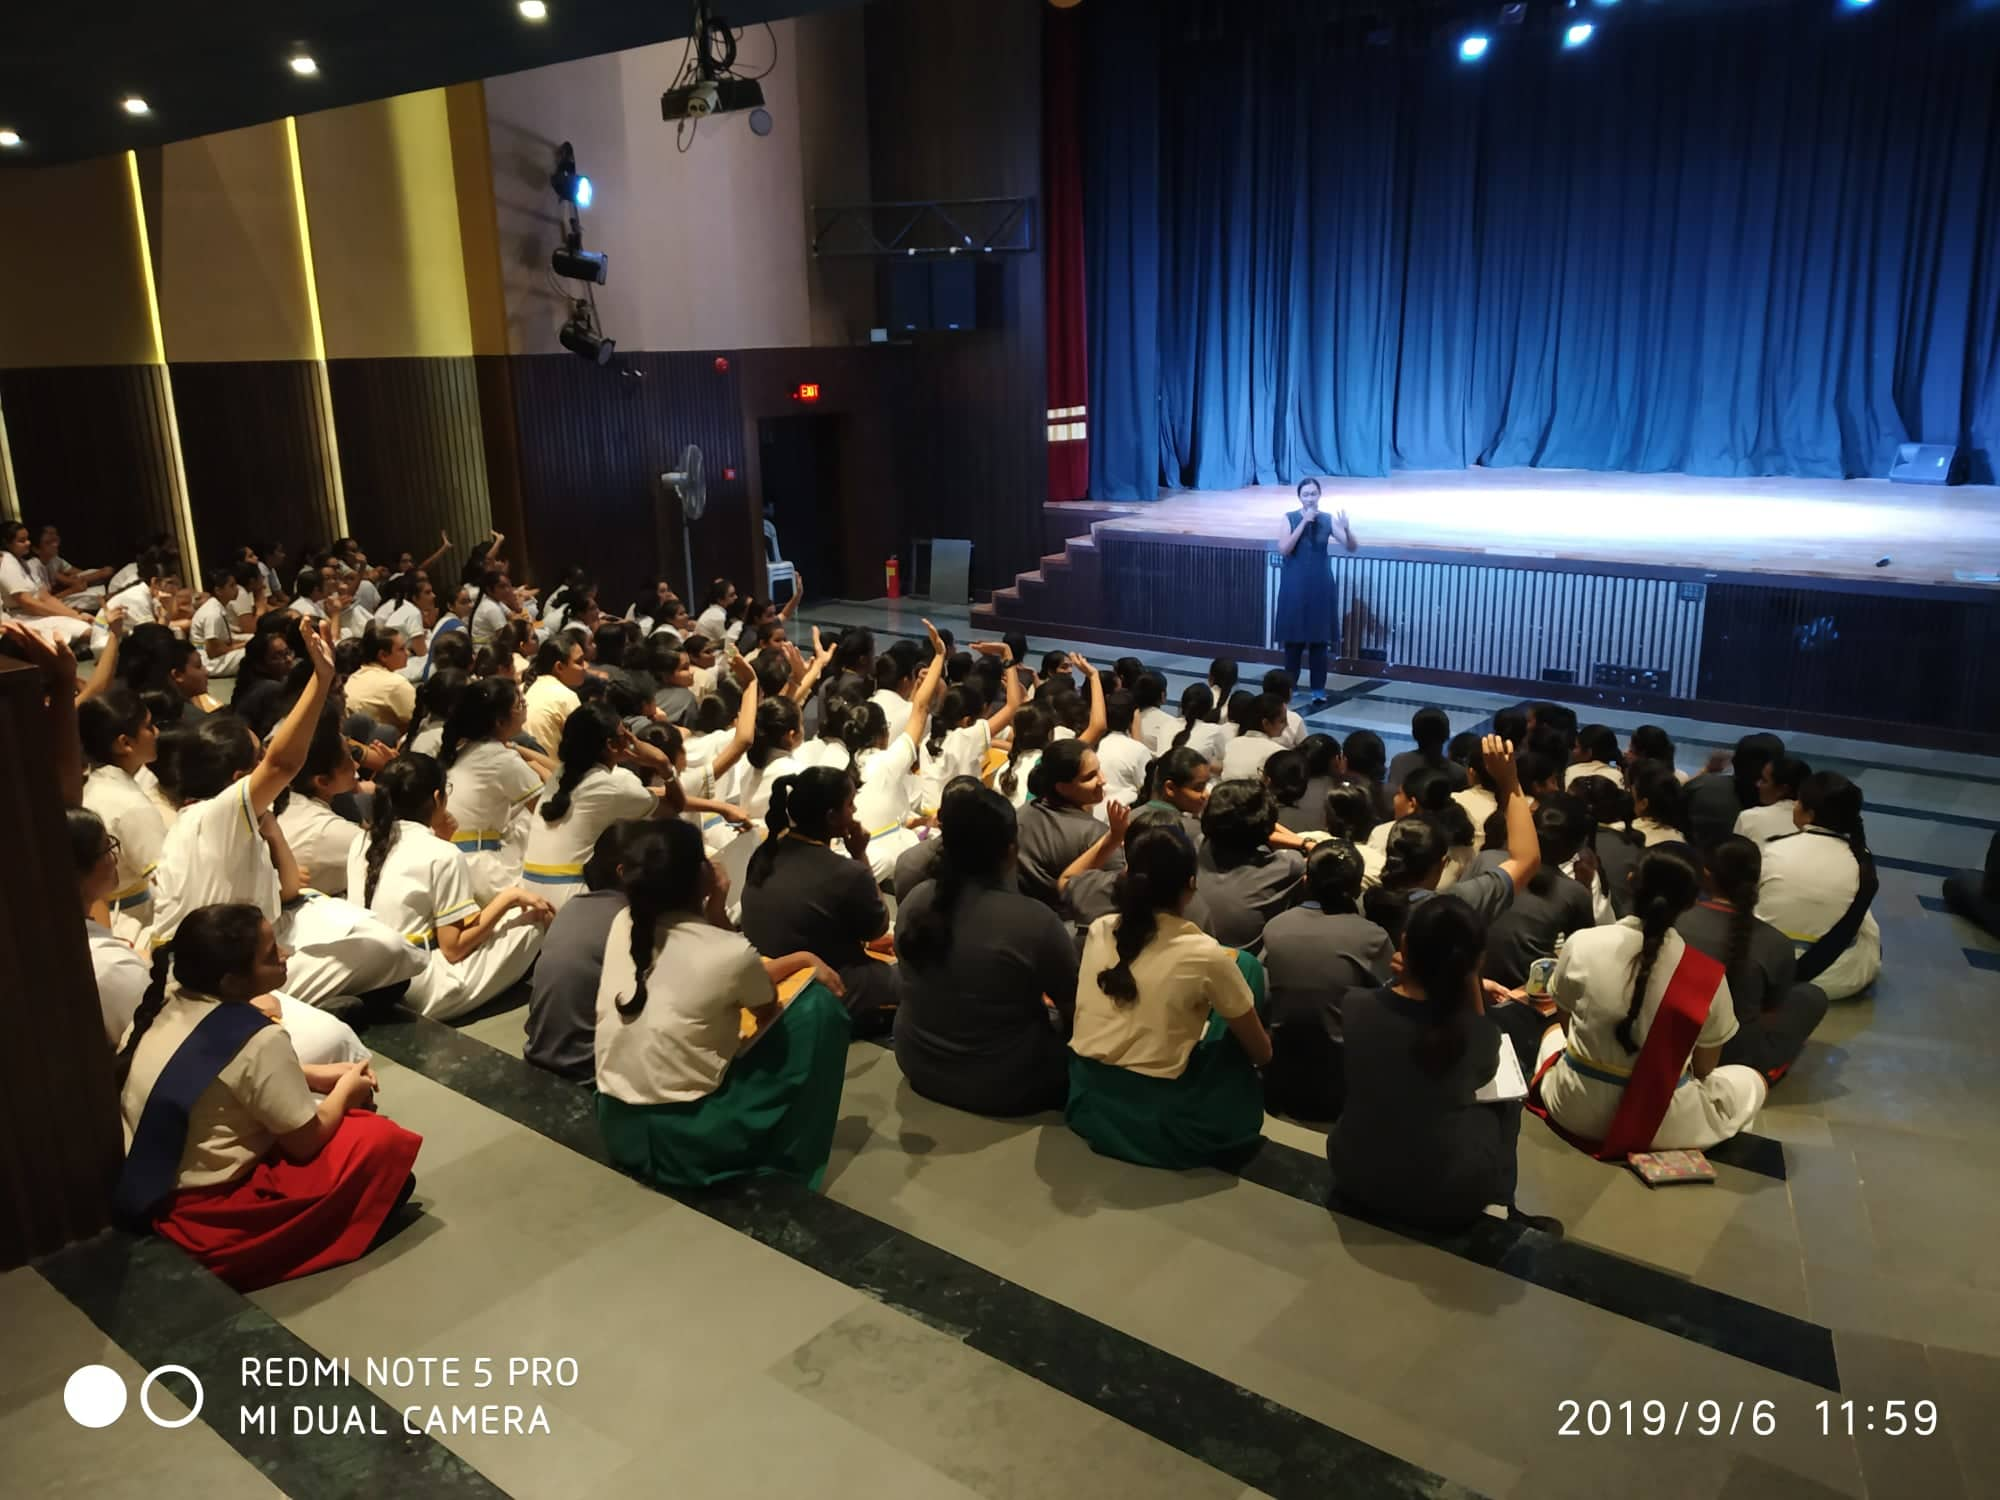 Varsha Seshan speaking on the mic to an audience of schoolgirls, many of who are raising their hands